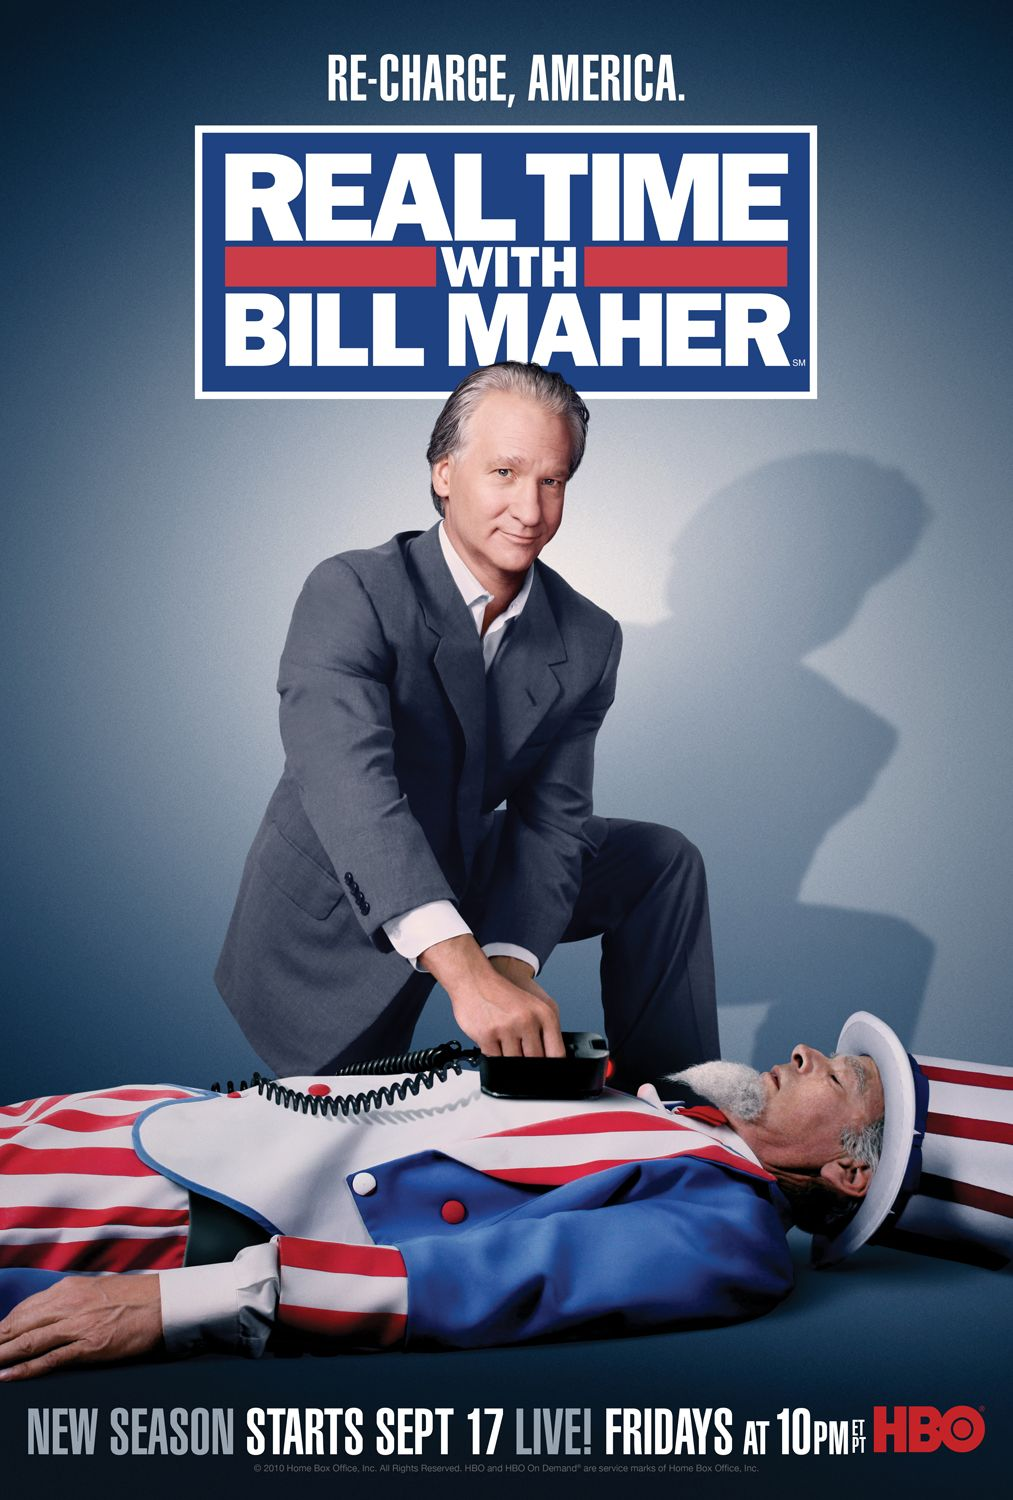 14 With Bill Maher Real-Time Icon Images